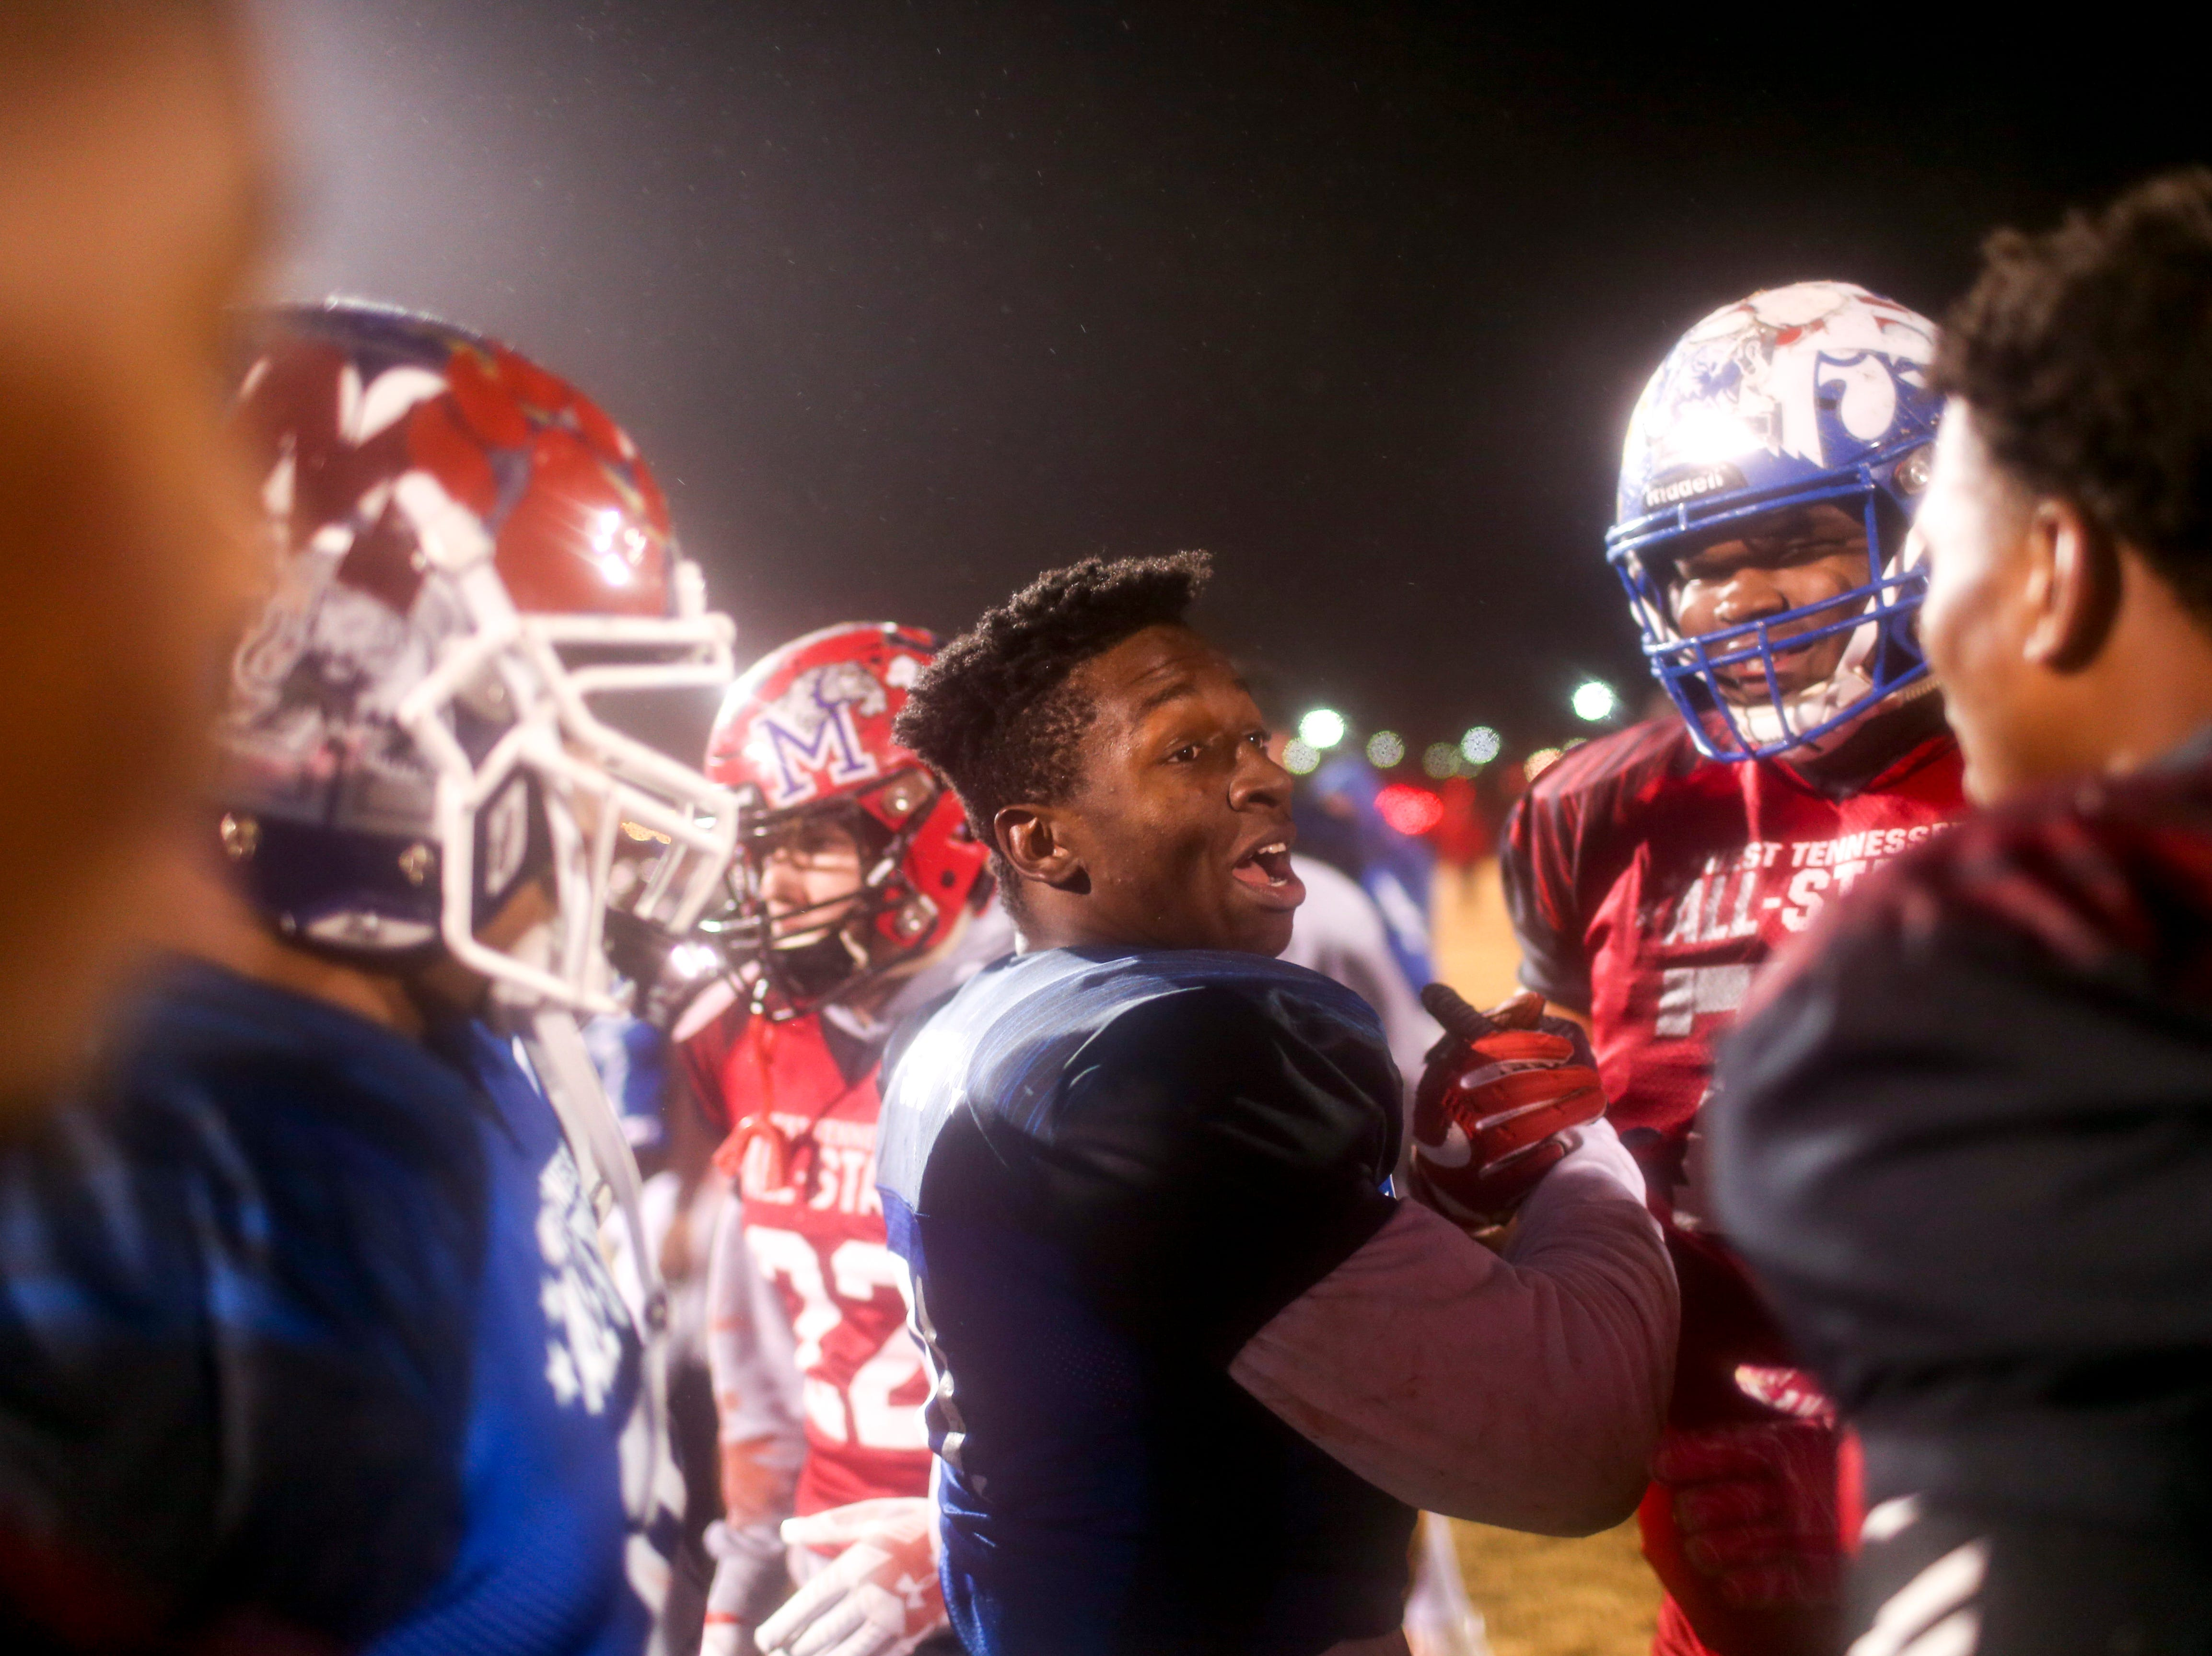 Haywood's Decourtney Reed (31) shakes hands and mingles with other players after  the West Tennessee All-Star football game at University School of Jackson in Jackson, Tenn., on Friday, Dec. 7, 2018.